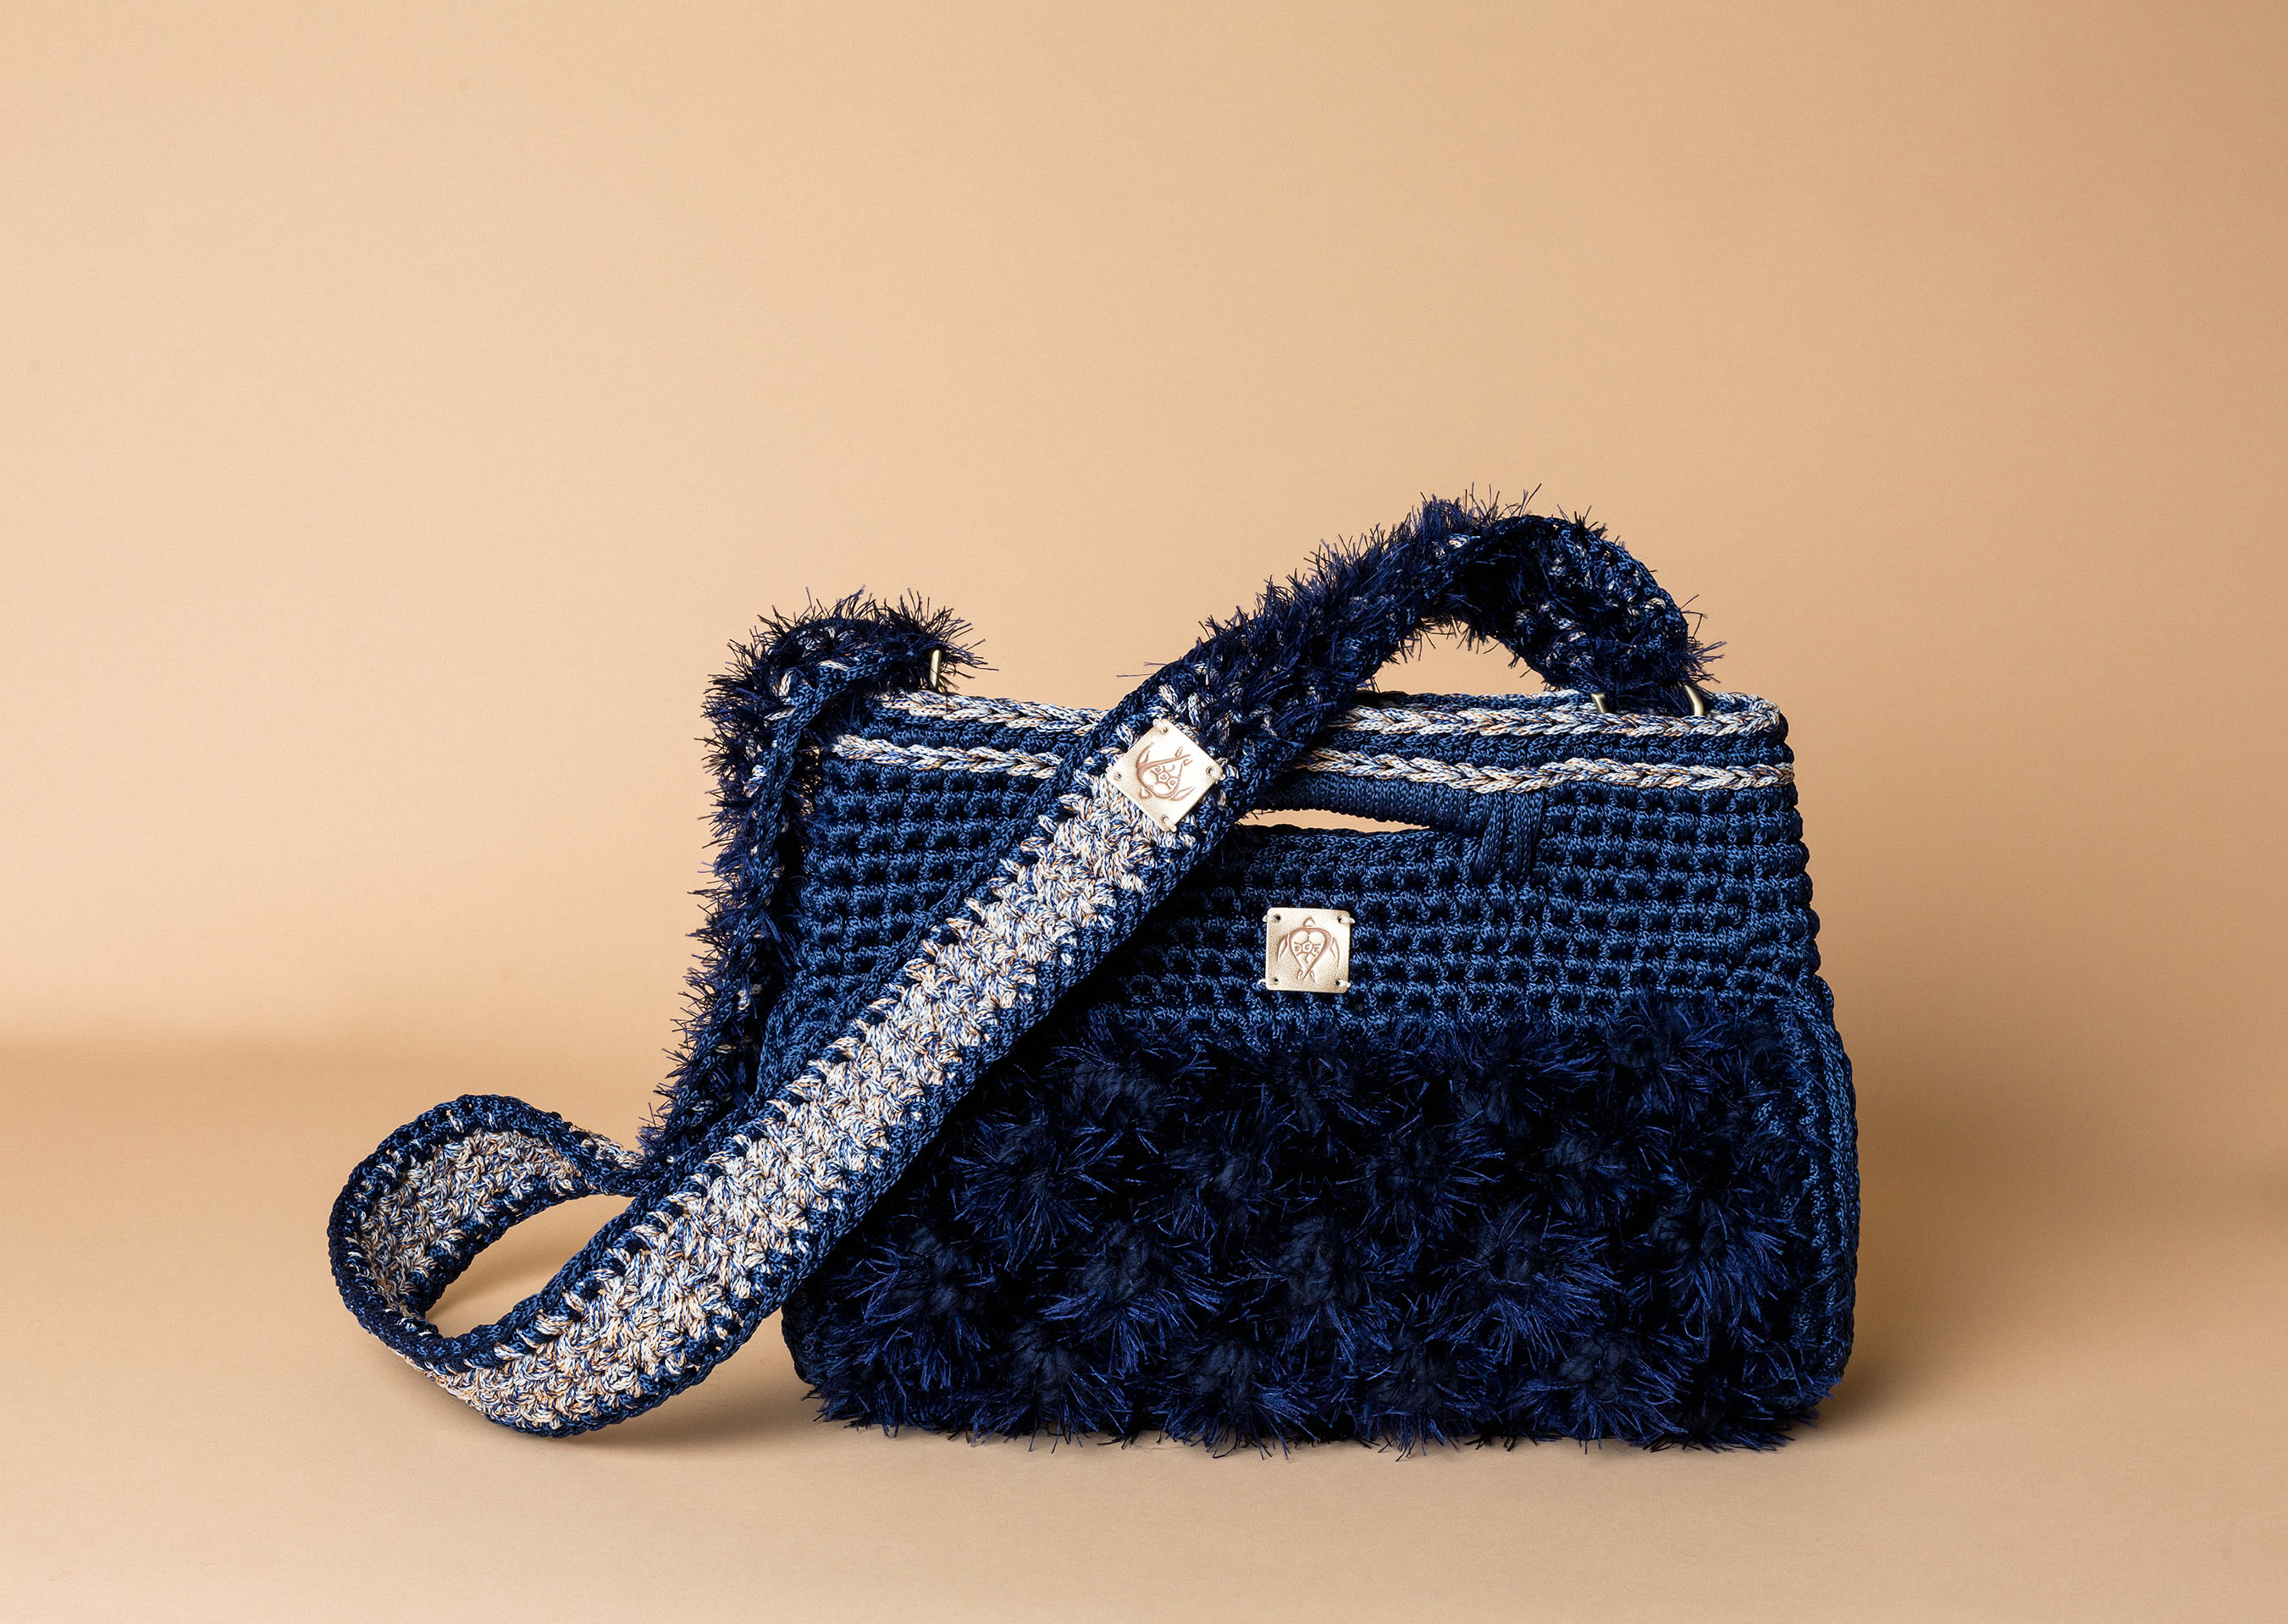 knitted handbag in midnight blue